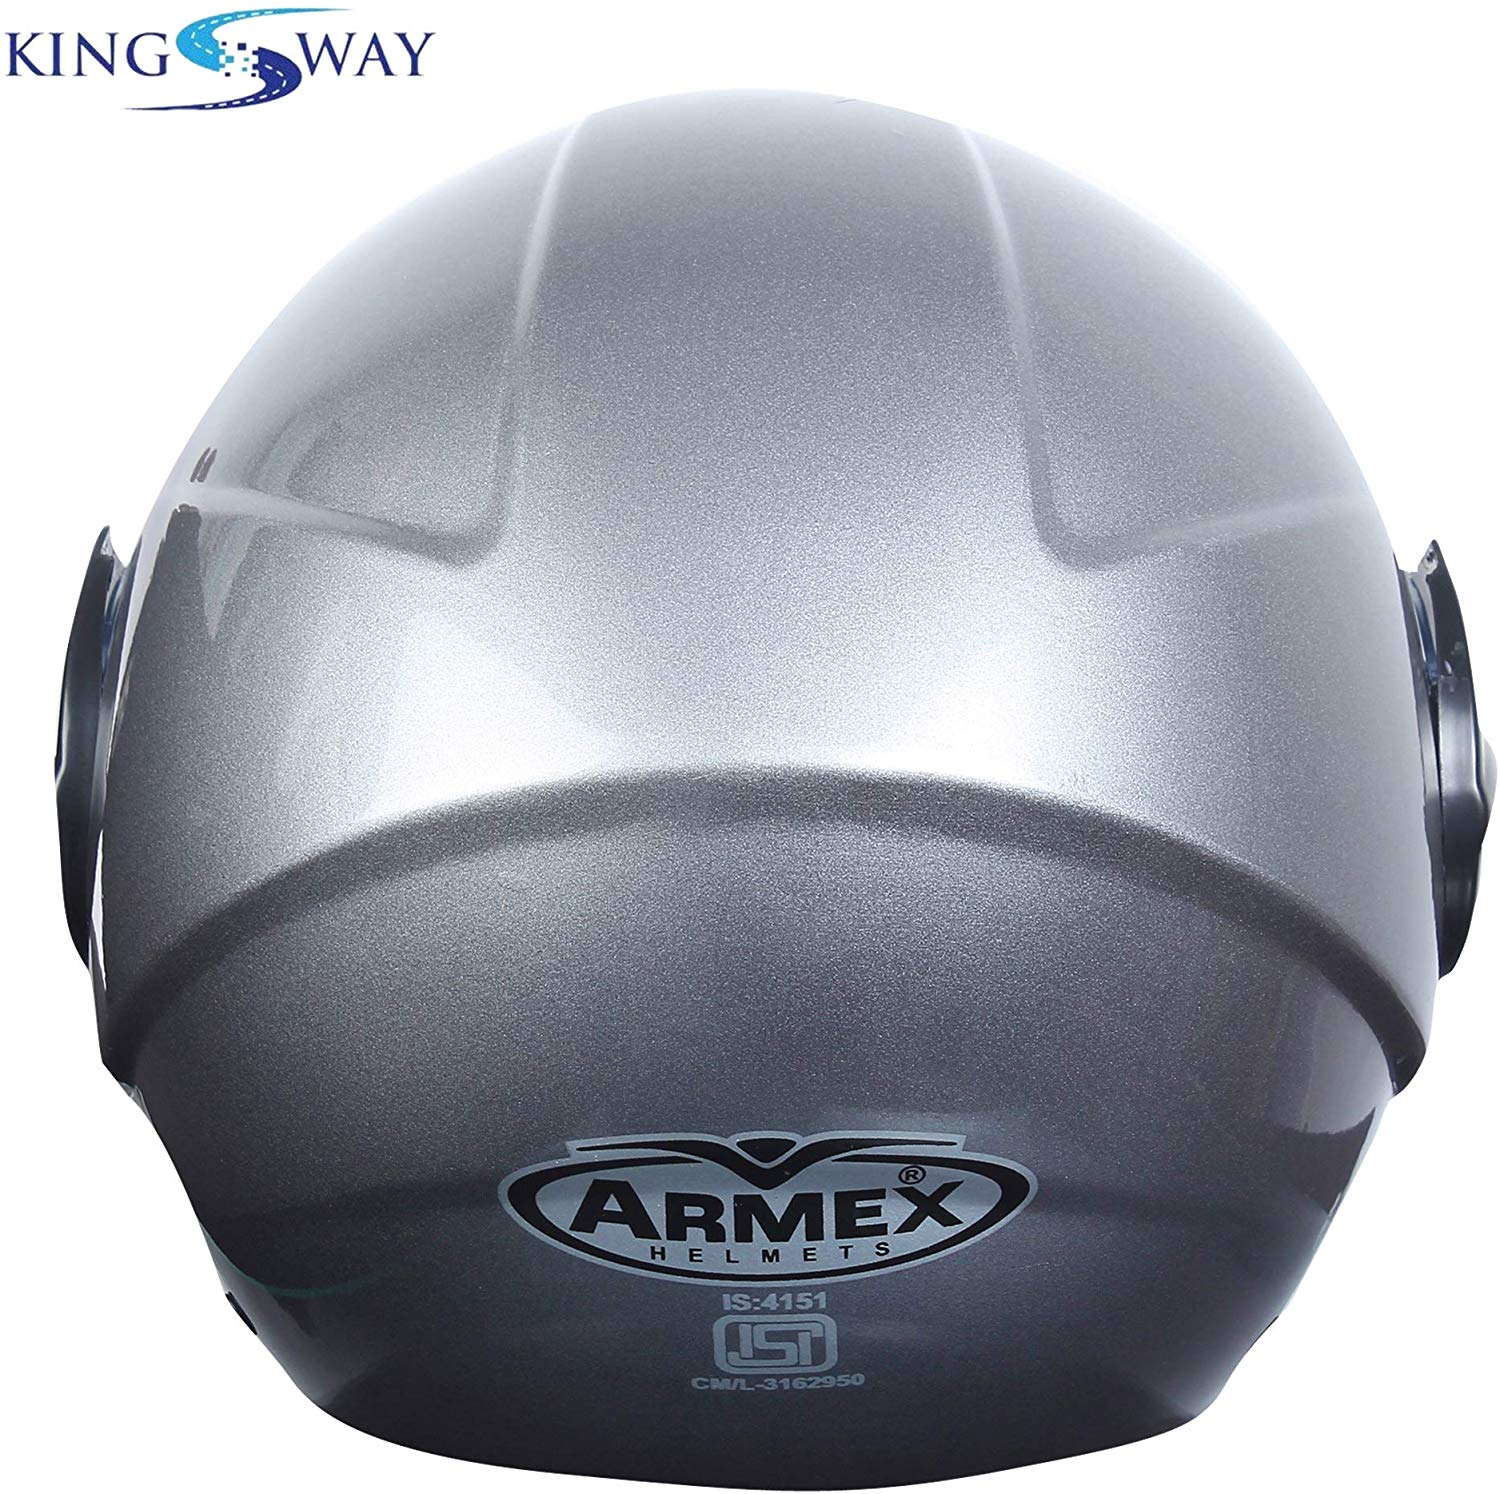 Kingsway armex series Unisex full-face helmet